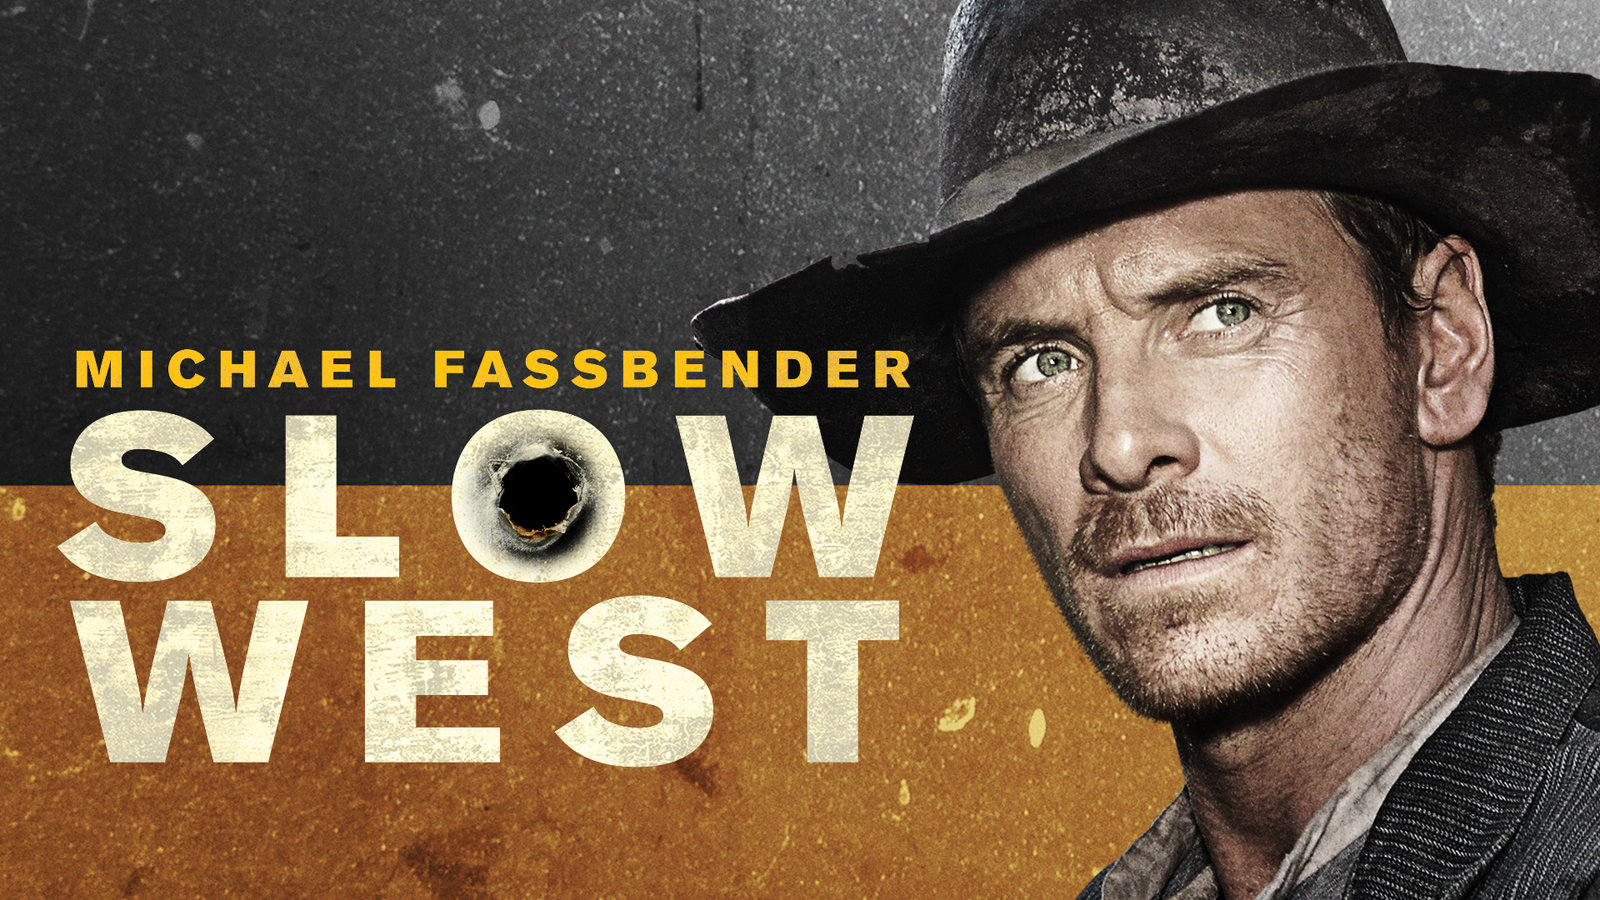 Slow West   DVD   Free shipping over £20   HMV Store